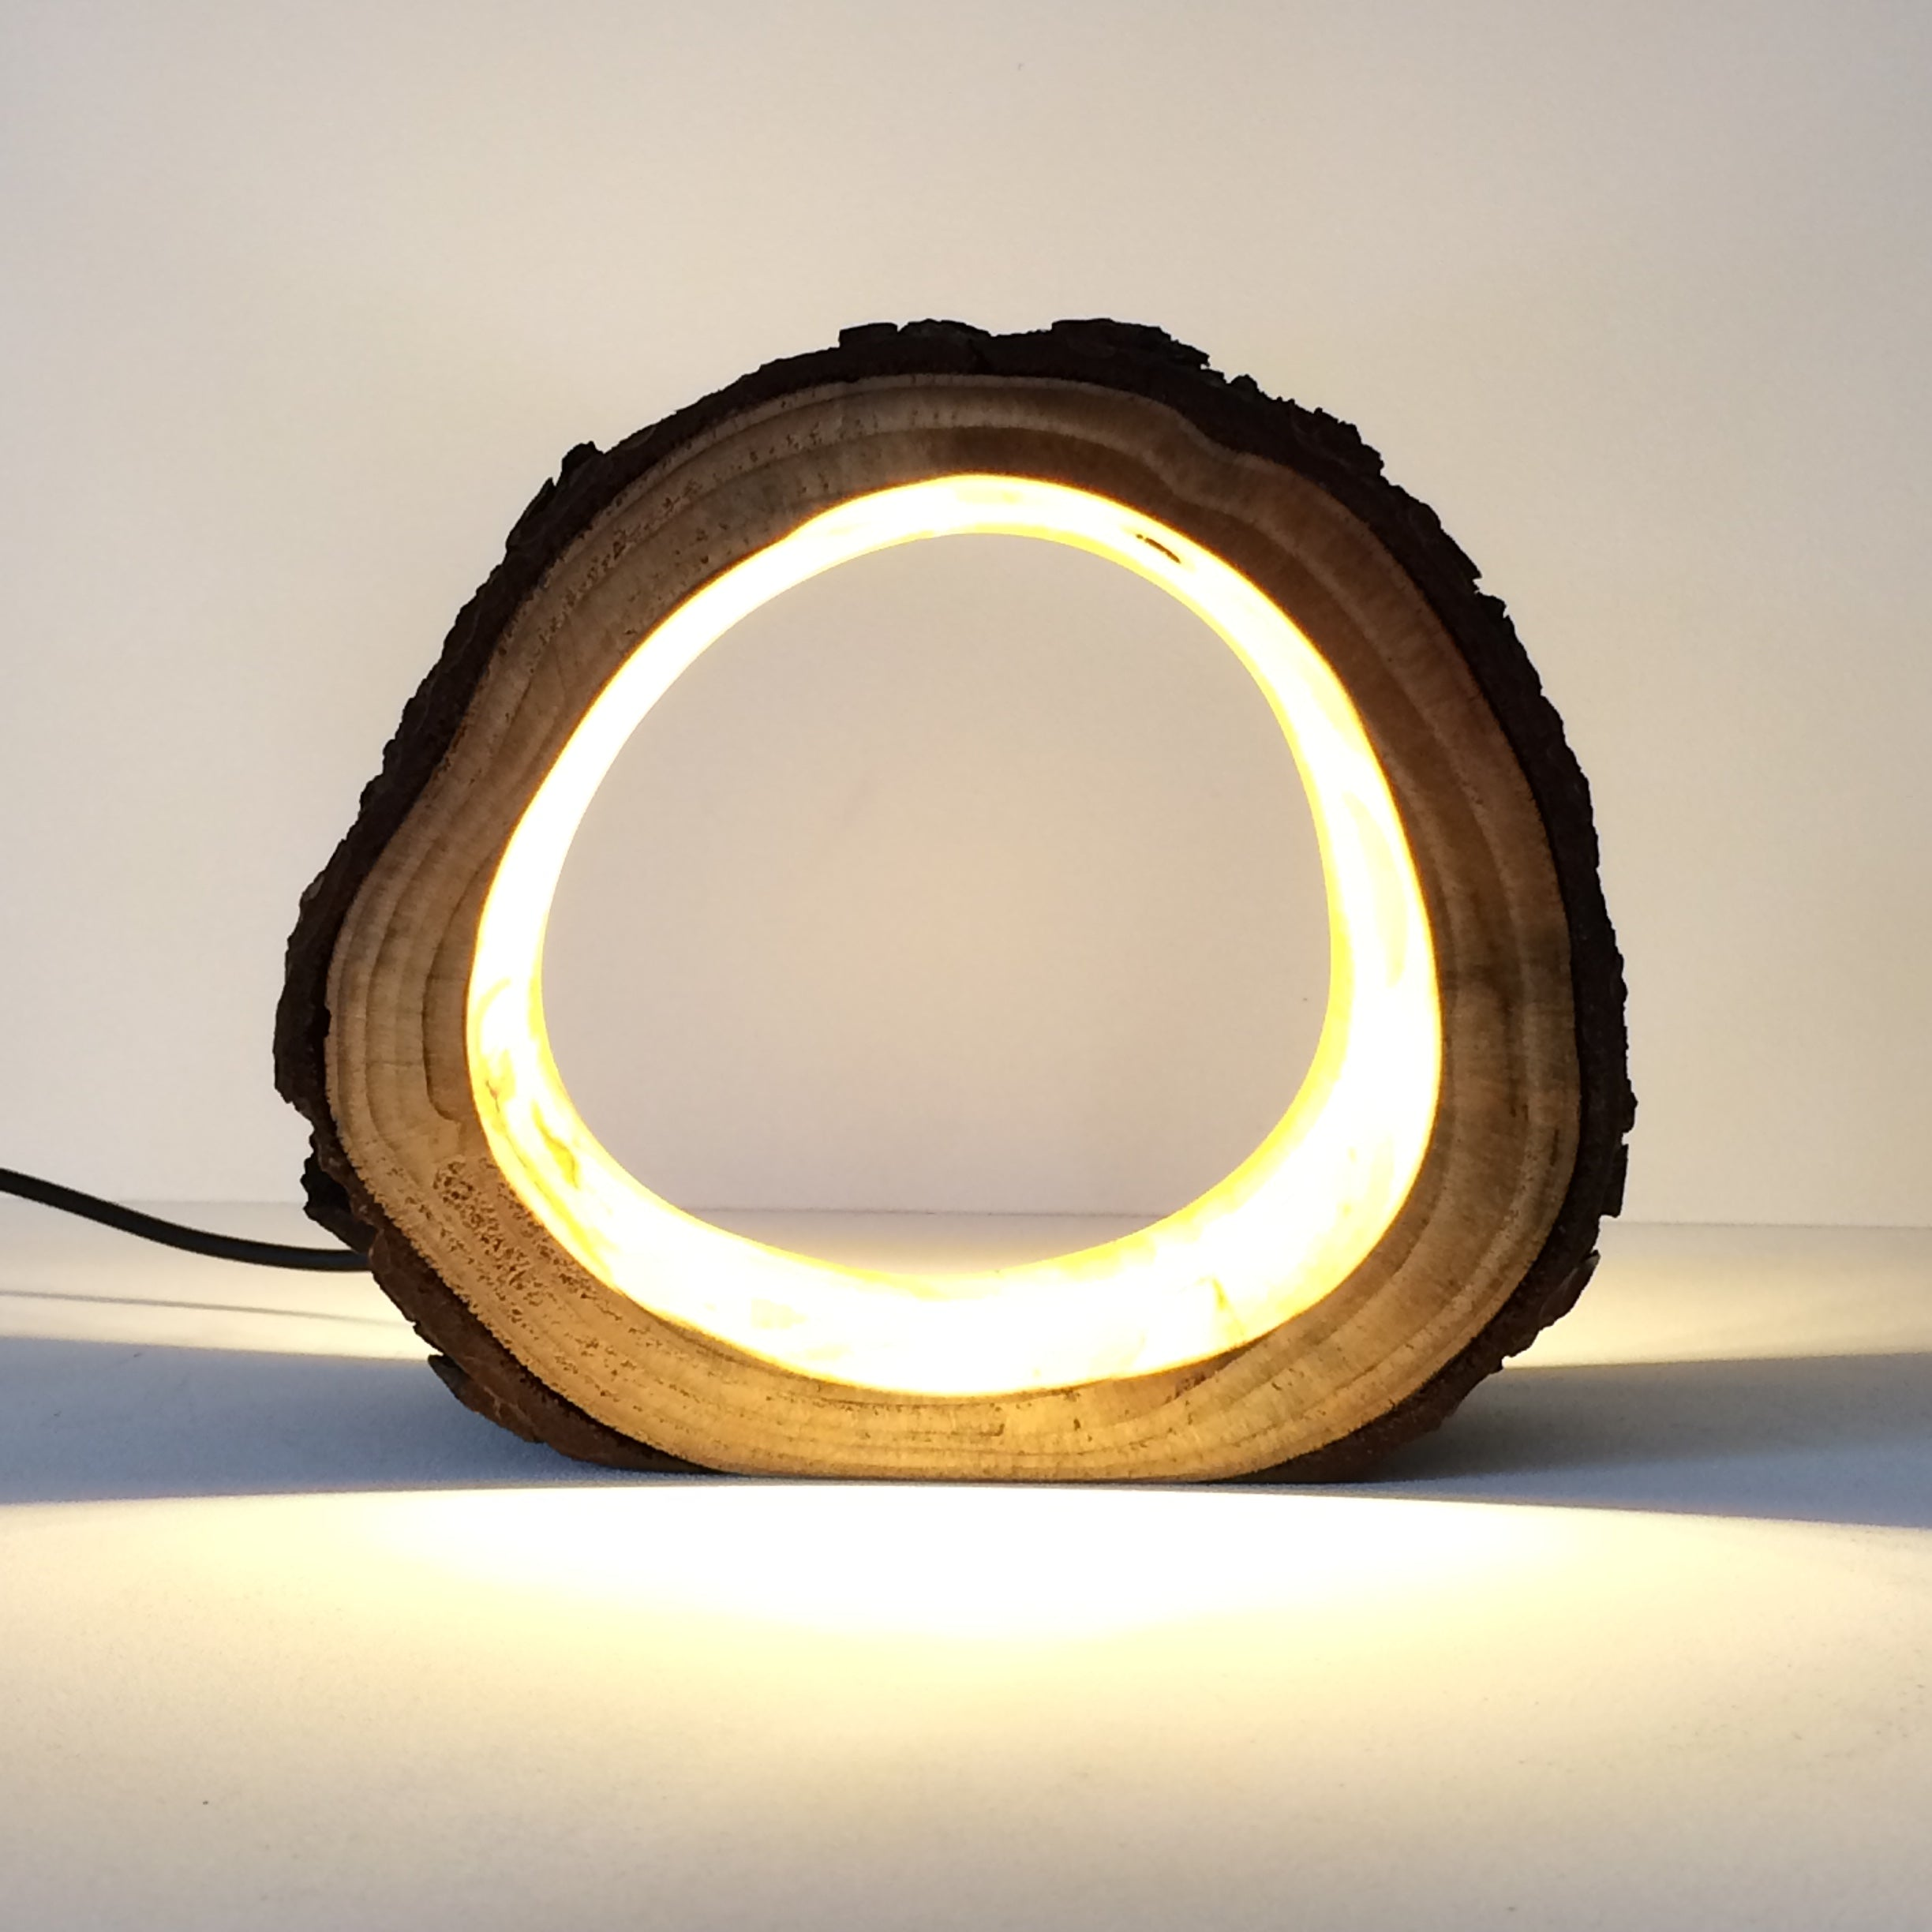 manufacturers lamps your rustic lighting home large lamp wholesale for black table living fluorescent room country wooden